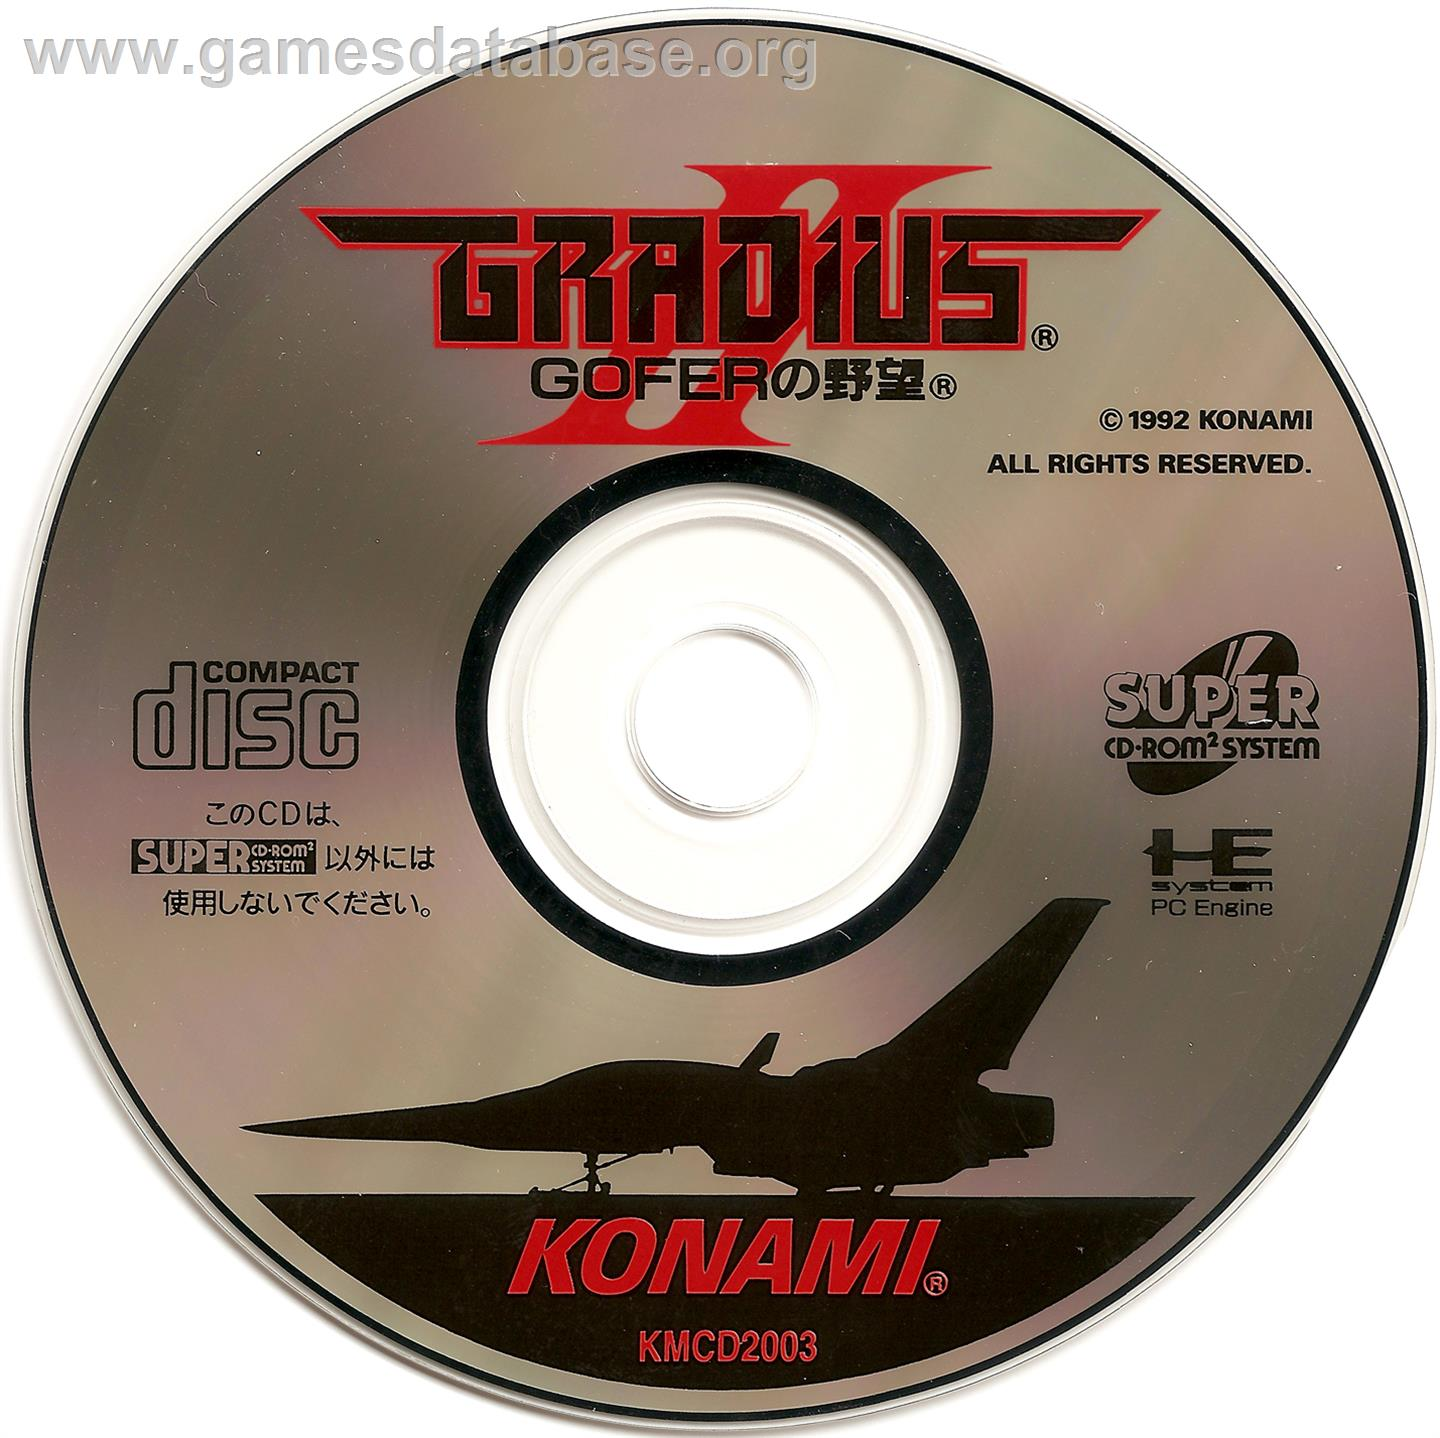 on the CD for Gradius II - GOFER no Yabou on the NEC PC Engine CD